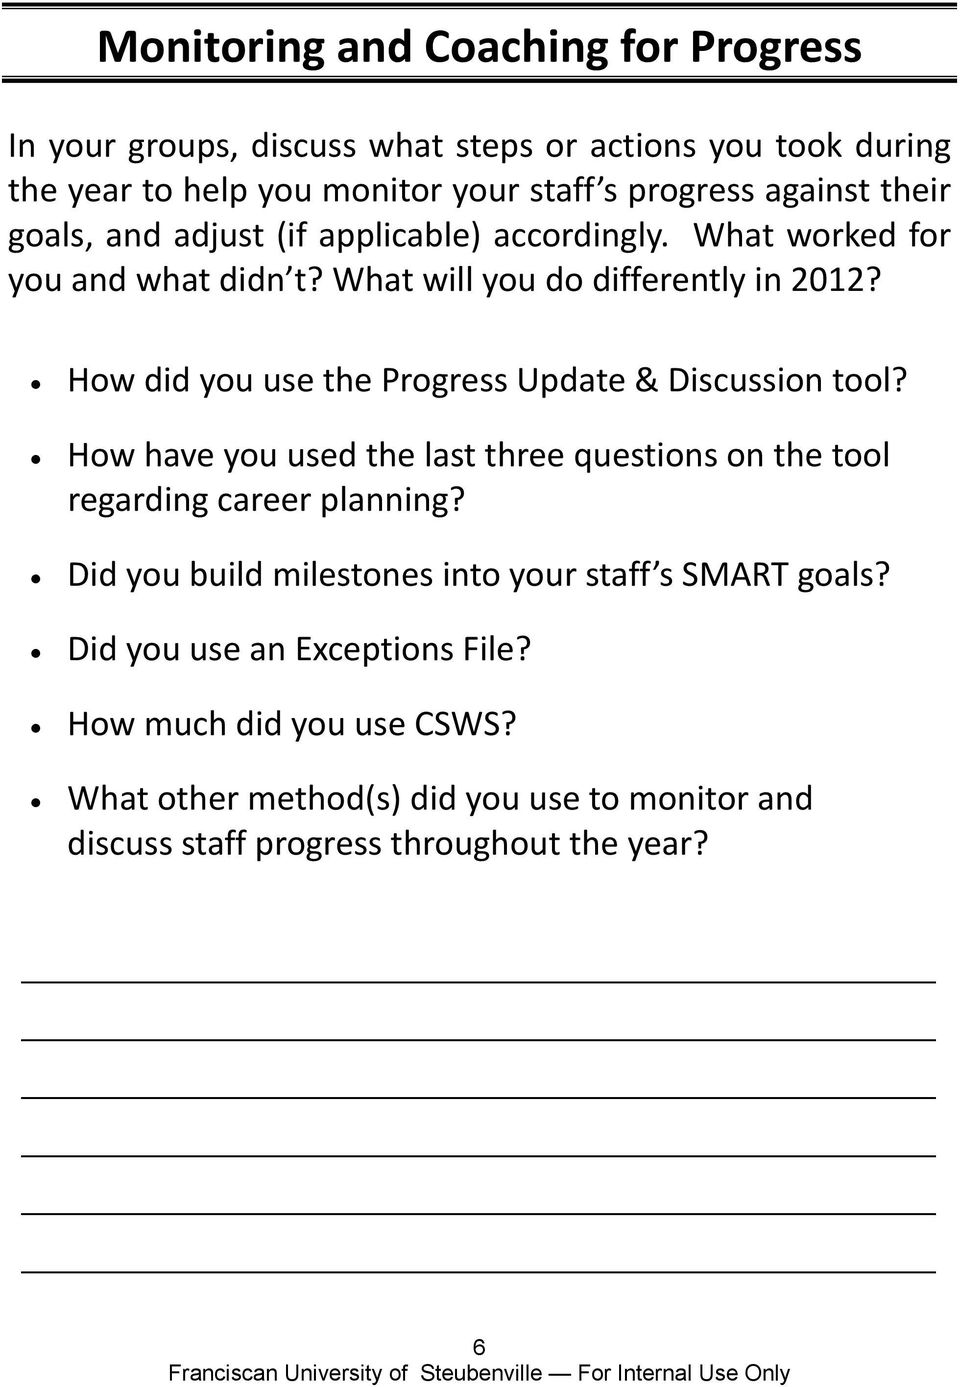 How did you use the Progress Update & Discussion tool? How have you used the last three questions on the tool regarding career planning?